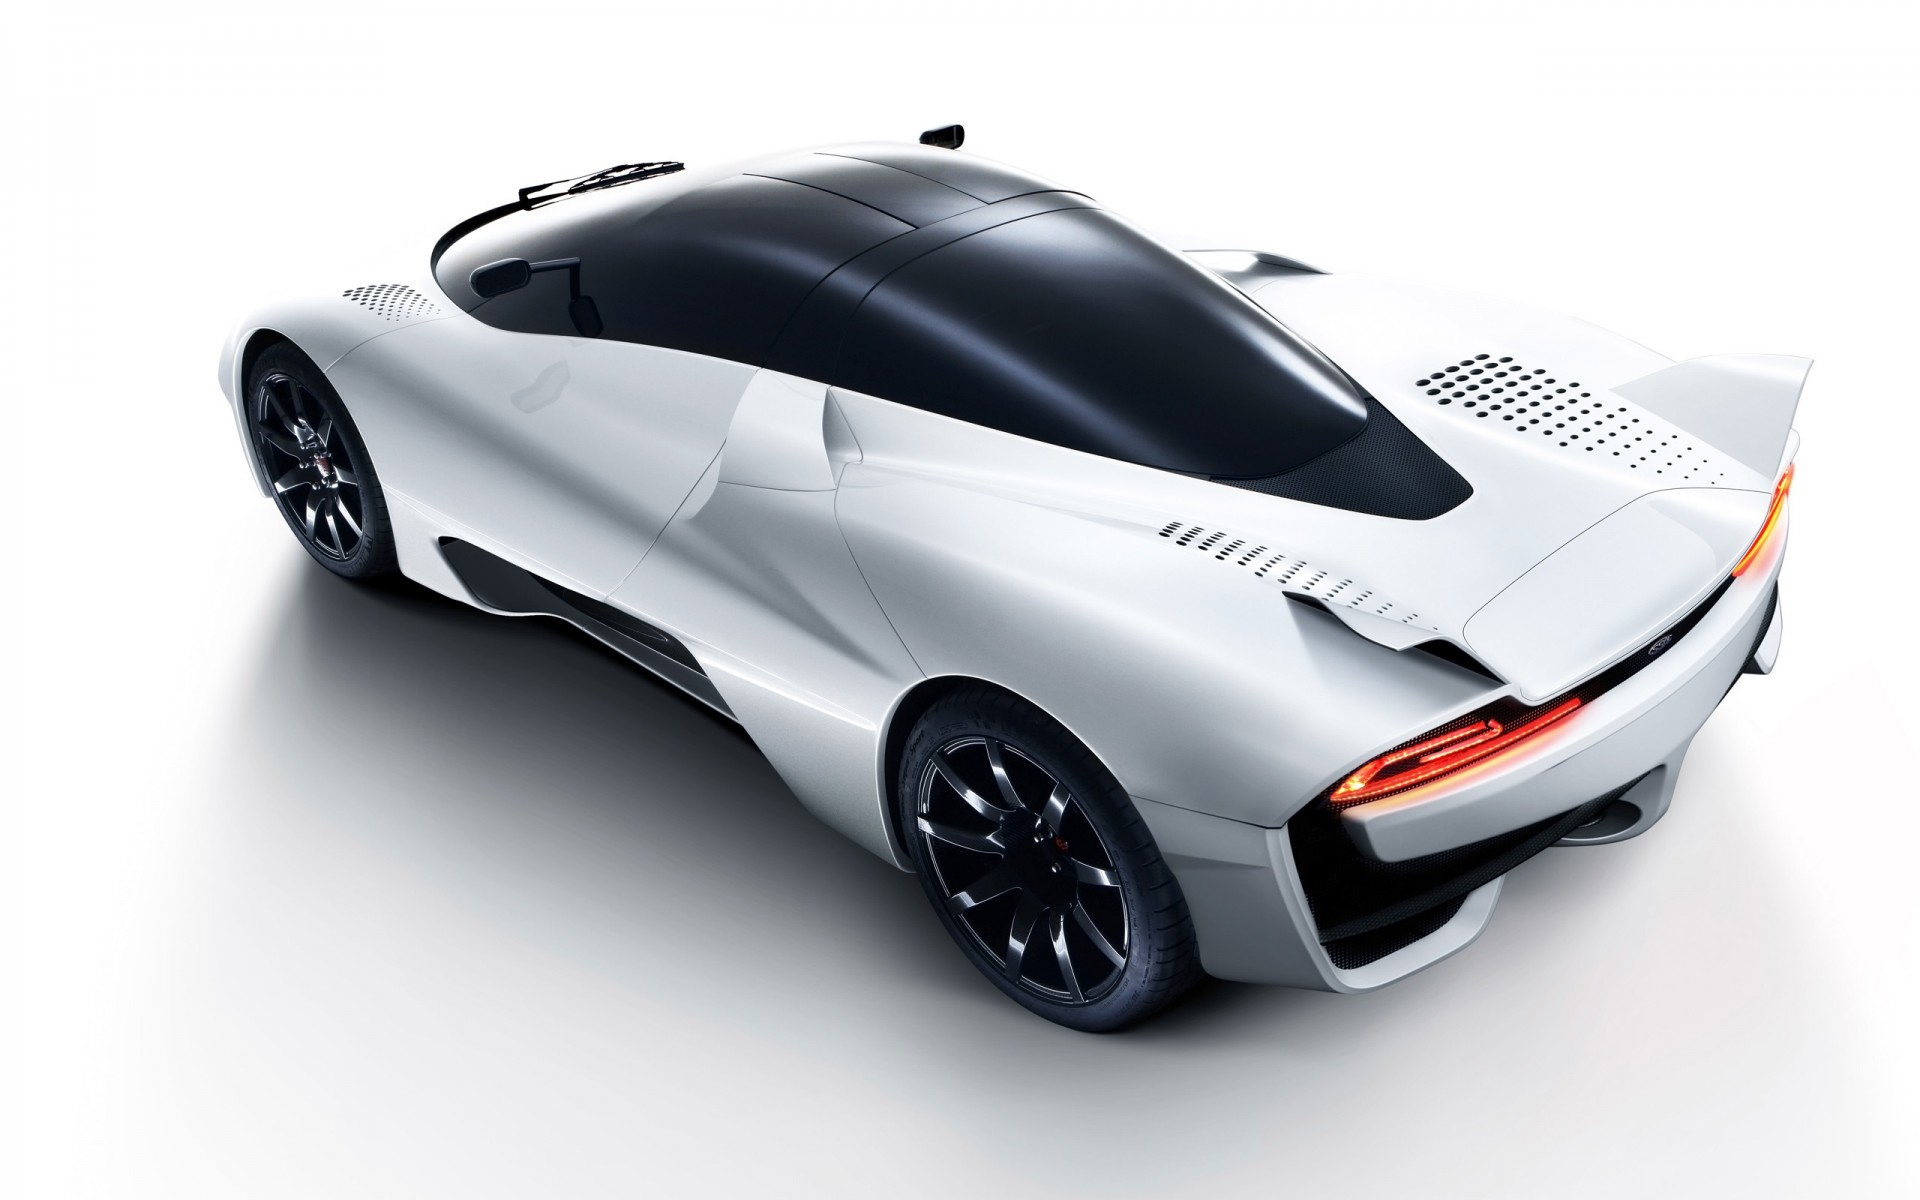 2014 SSC Tuatara 2 Wallpaper HD Car Wallpapers ID 4584